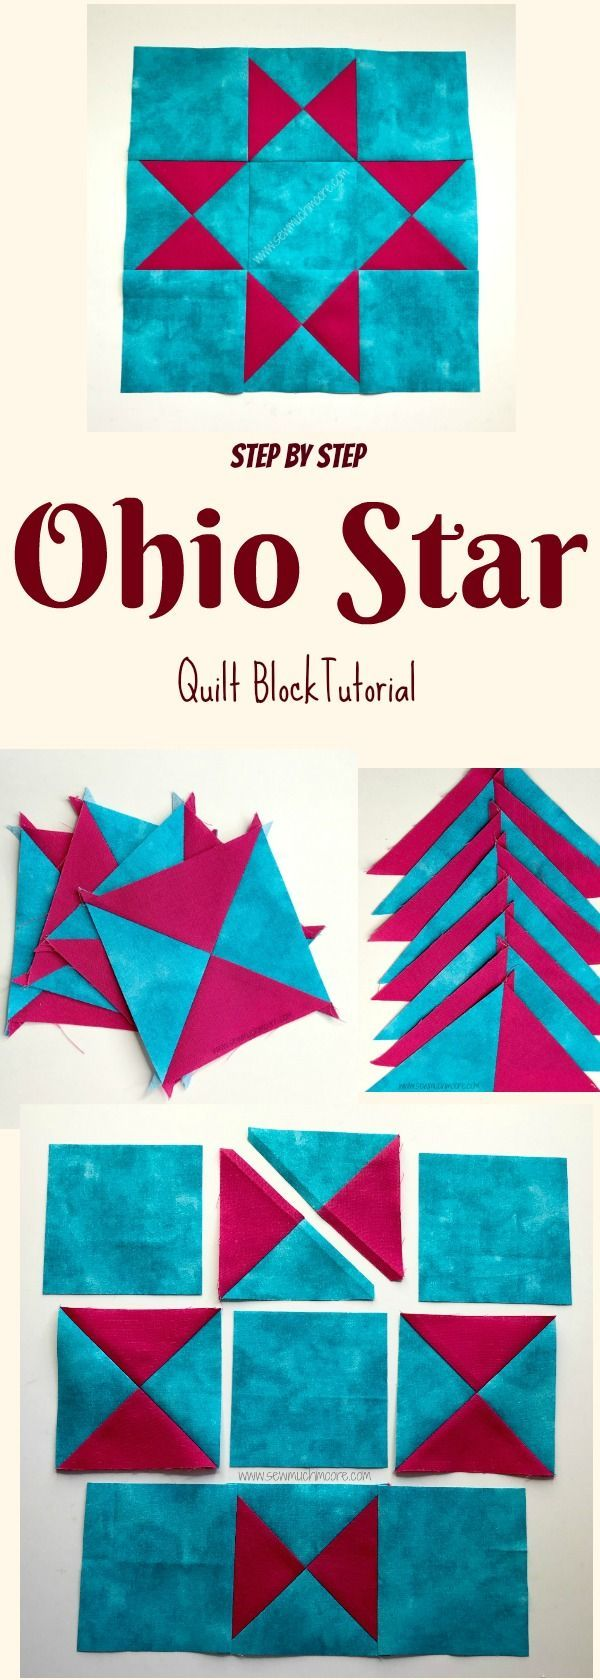 This step-by-step quilt block tutorial is the perfect project! Even a free pattern to get you inspired and sewing! DIY